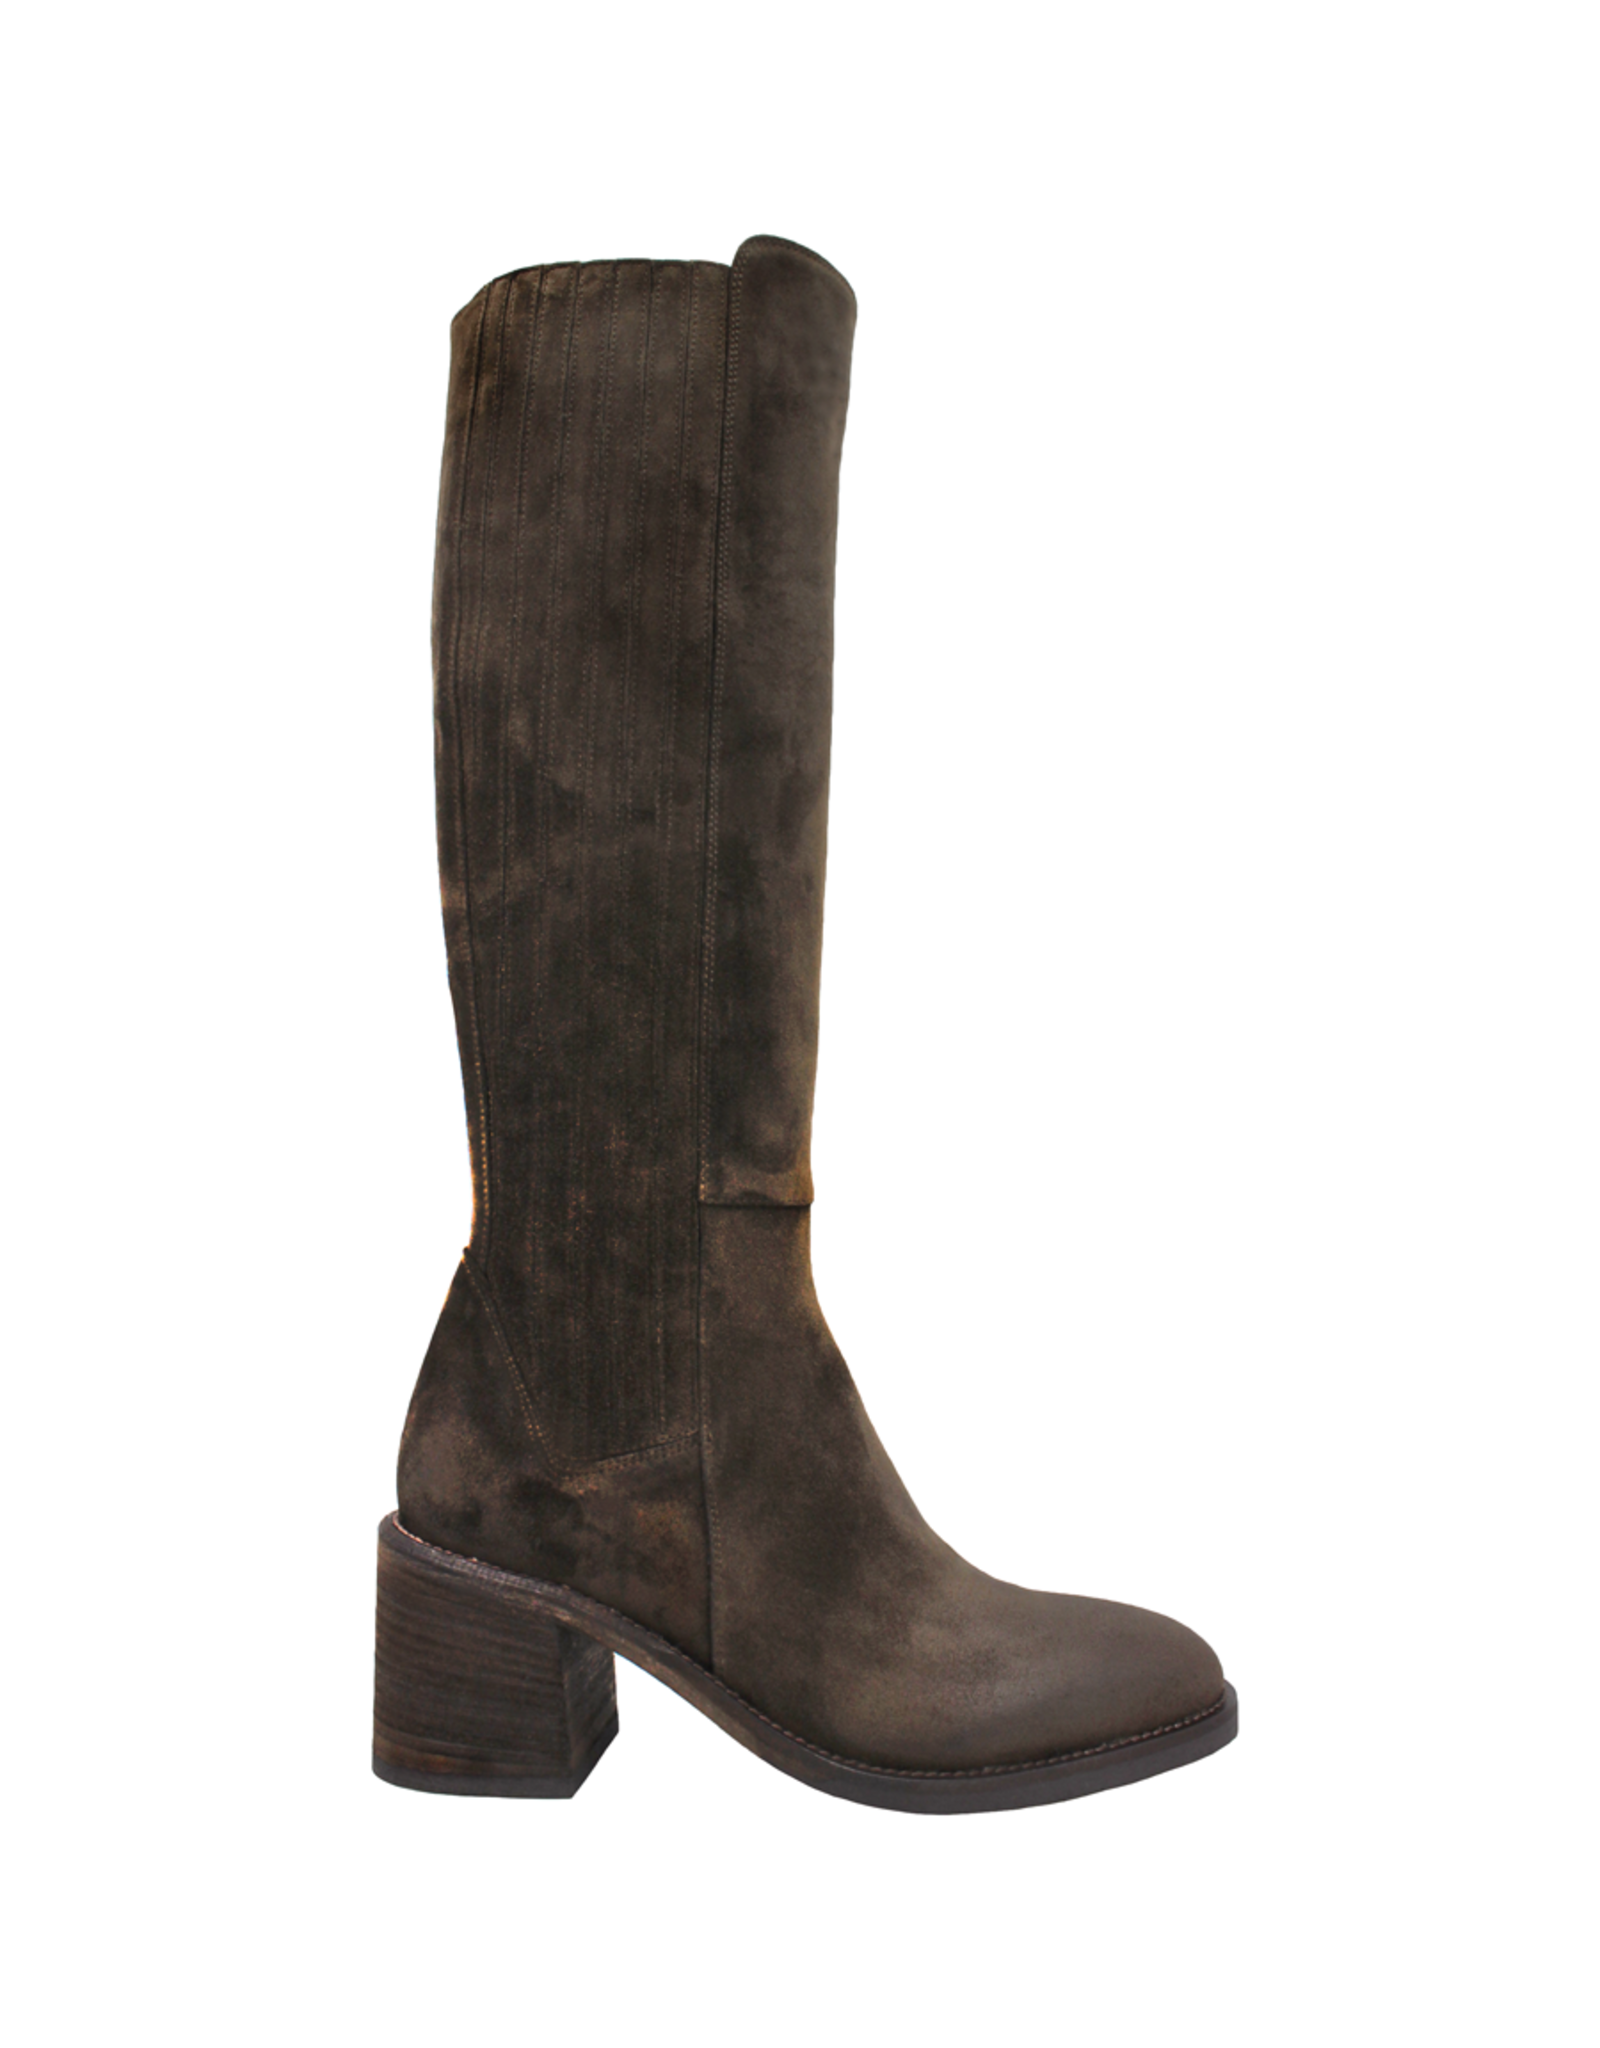 Now Now Brown Knee Boot 7159